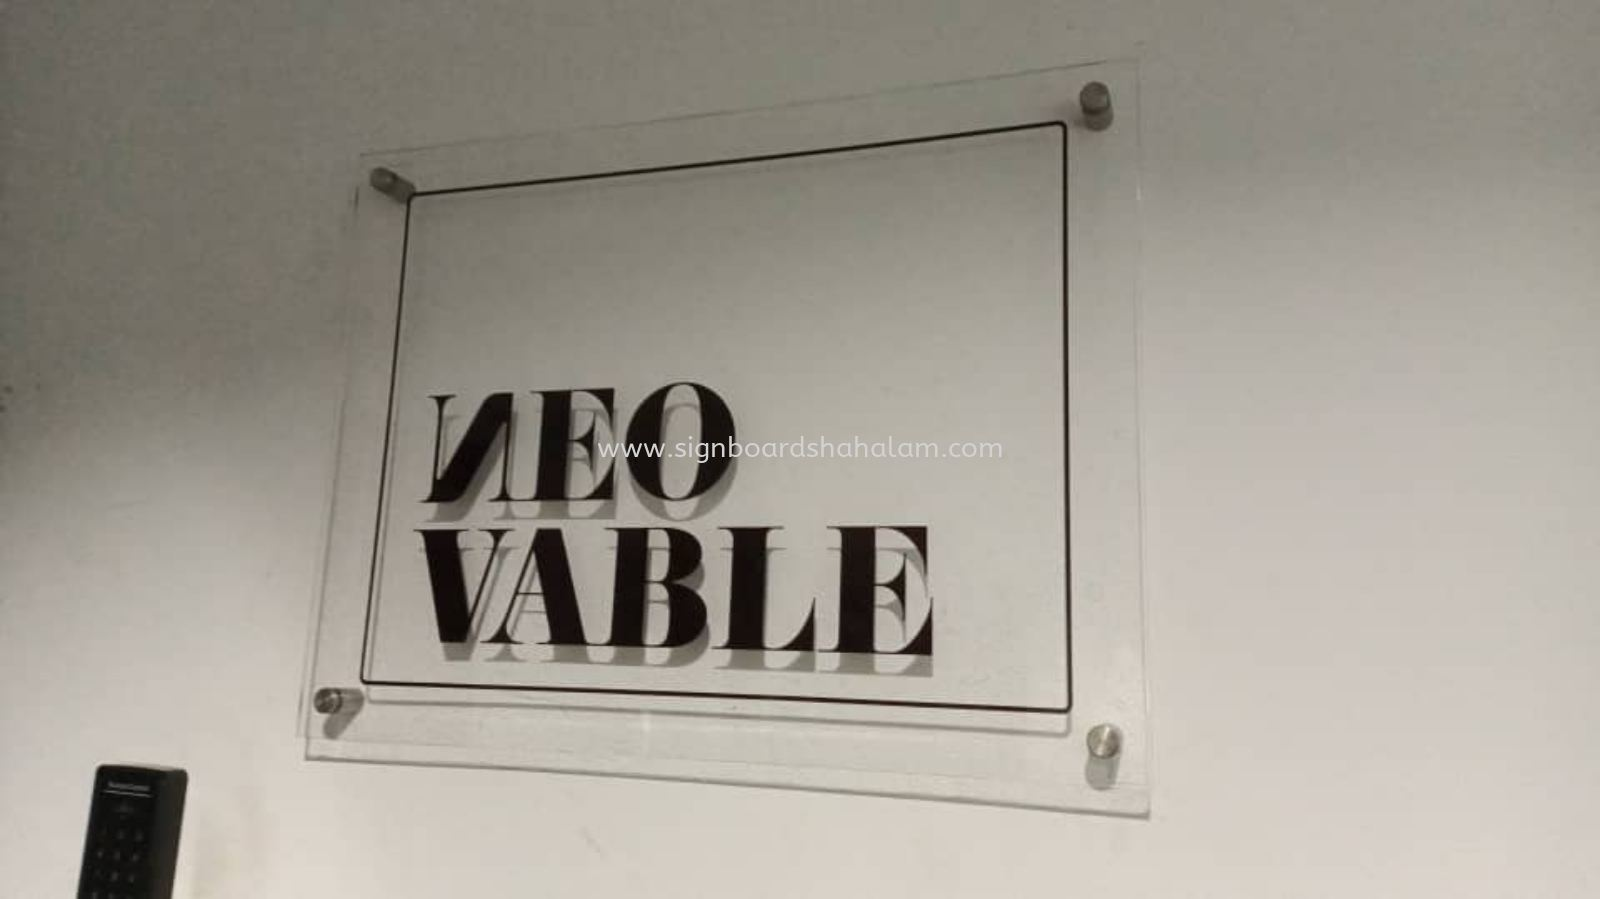 Neovable Sdn Bhd KL - Acrylic Poster Frame